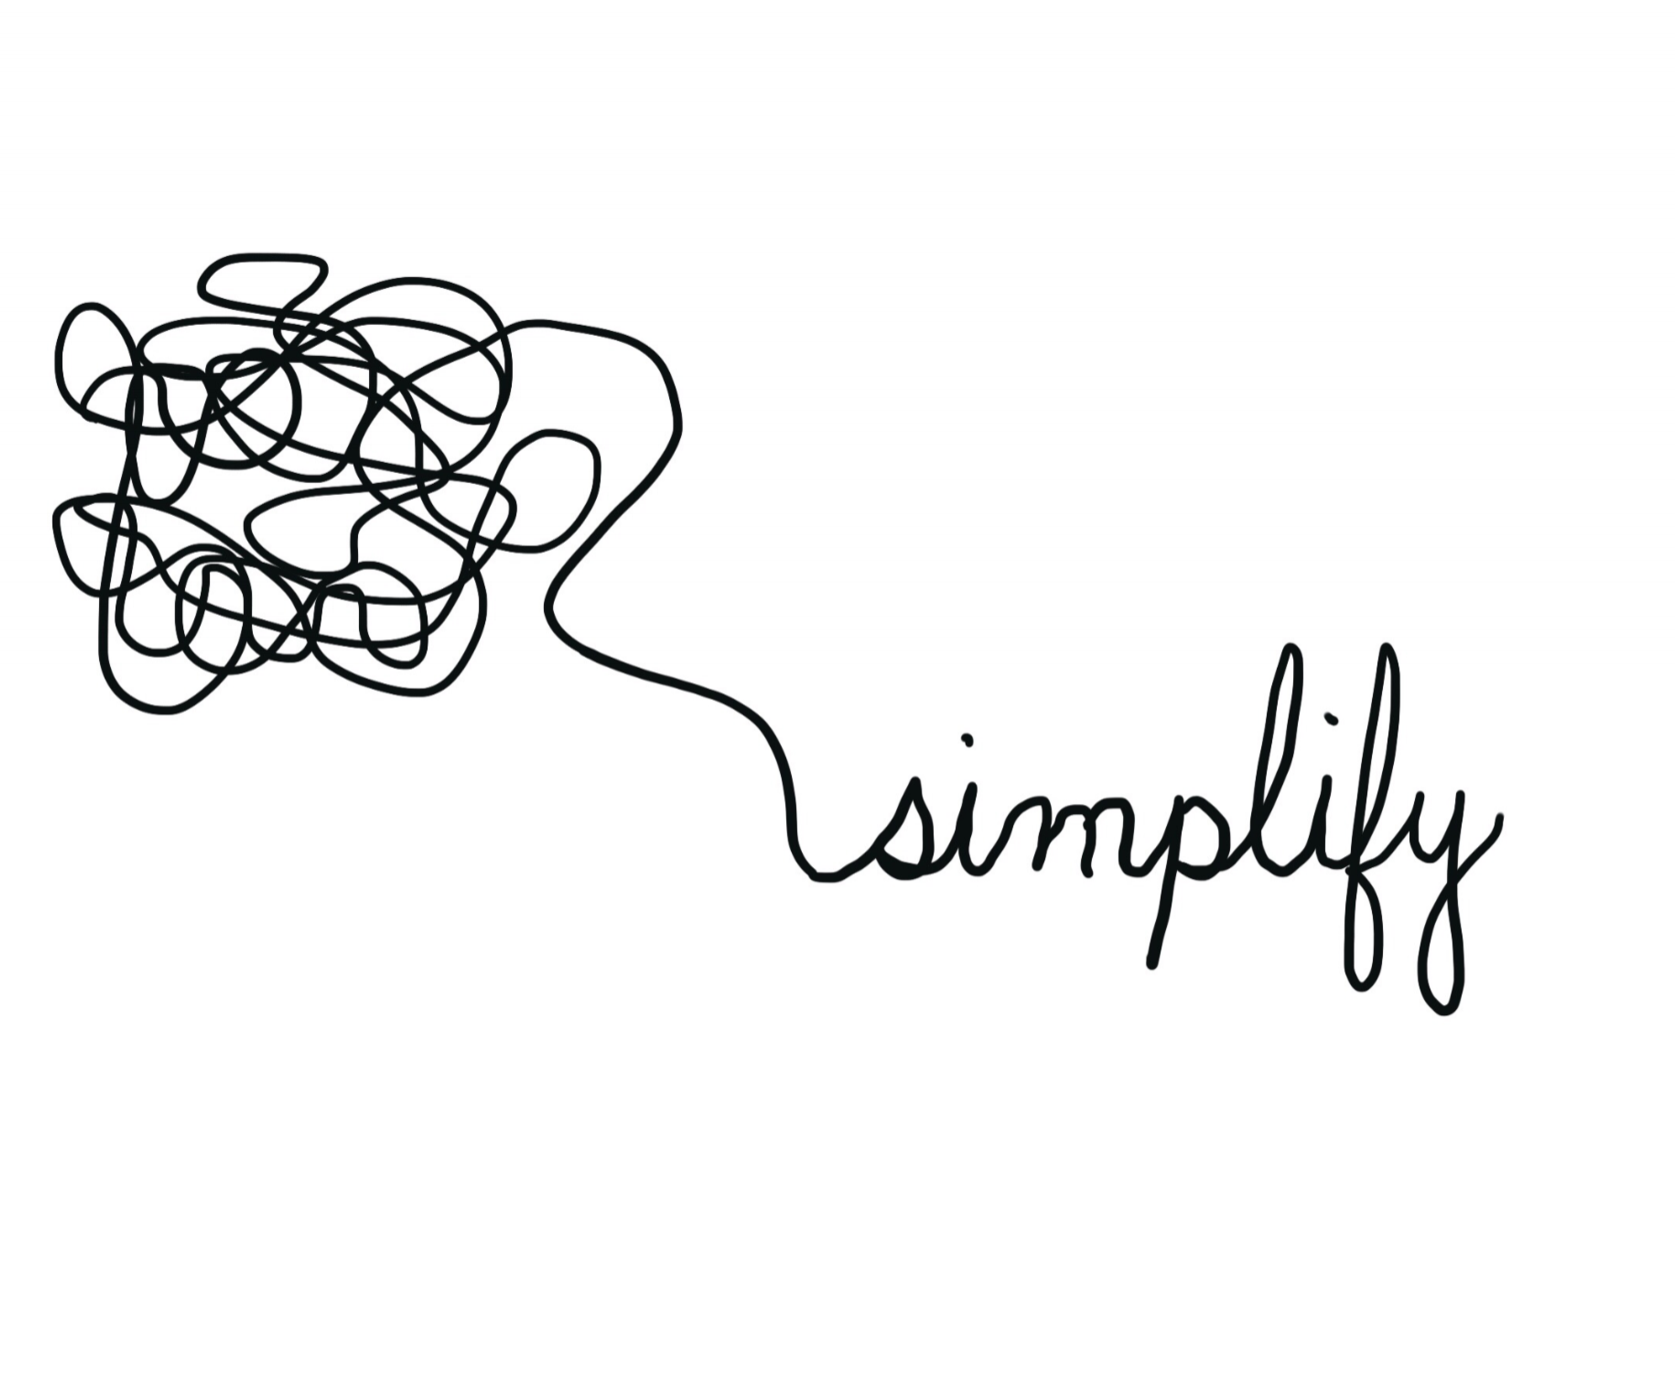 Simple looks easy. - But it's not. I am an expert at simplifying the complex. Having clarity helps you cut through the 5,000 marketing messages that bombard us daily.